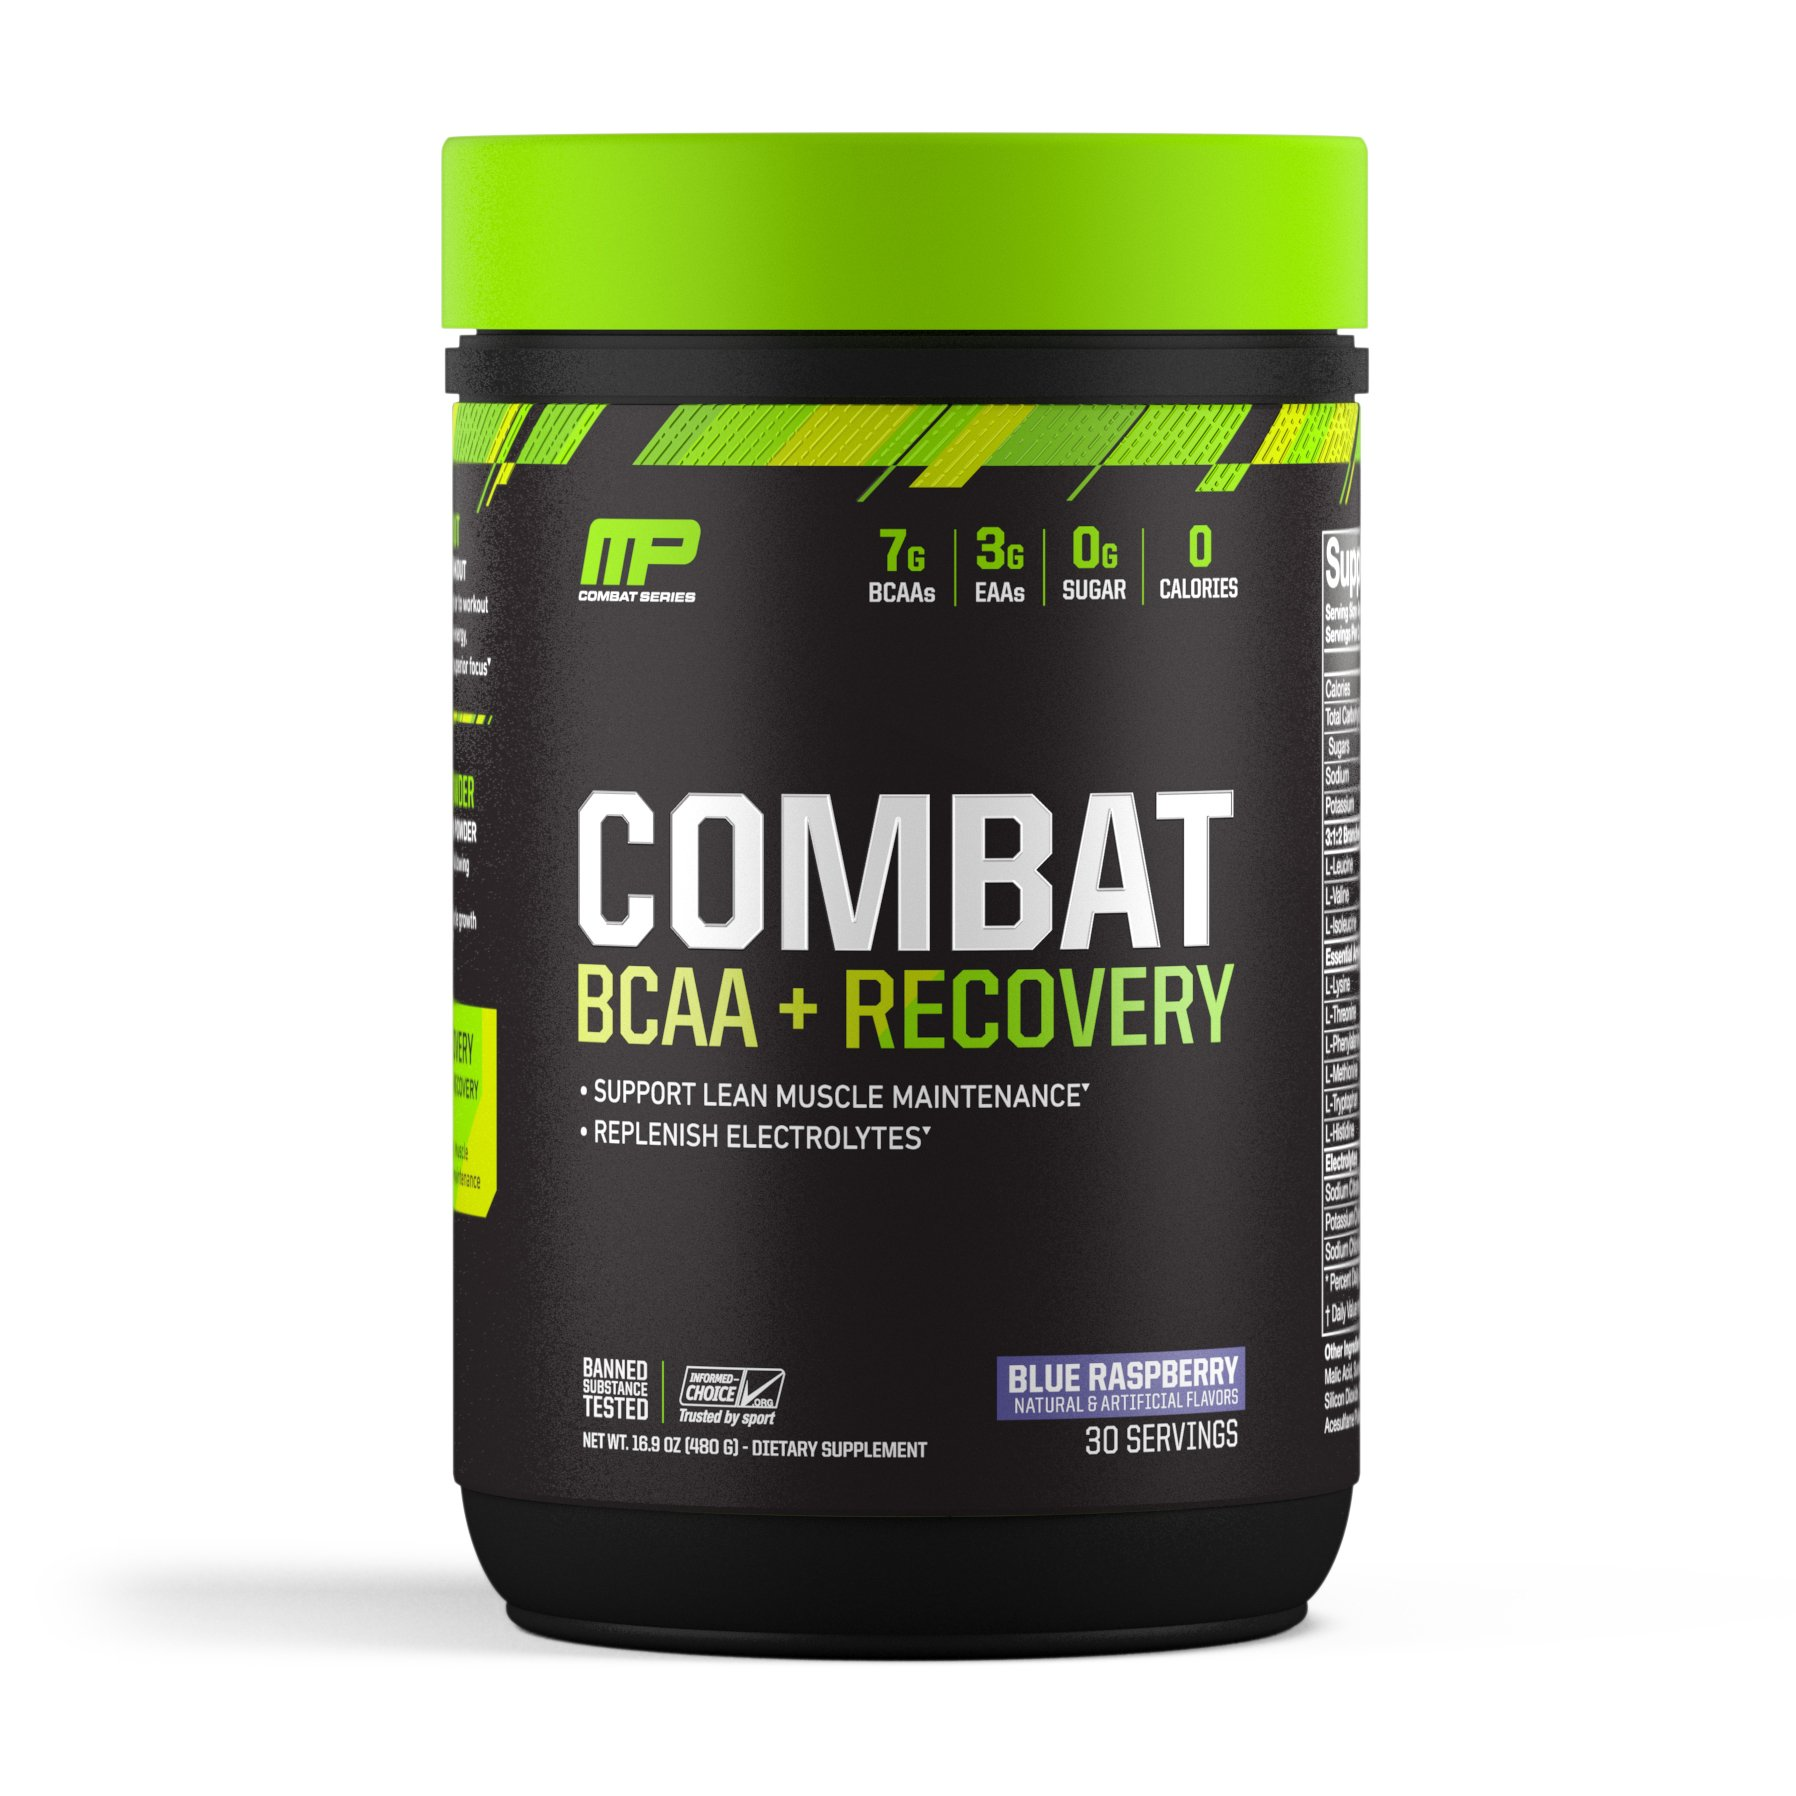 MusclePharm Combat BCAA + Recovery, BCAA 10 Grams, Electrolytes, Post-Workout Recovery, BCAA Post-Workout Powder, Enhanced Recovery, Pre-Workout Formula, Blue Raspberry, 1.99-Pounds, 30 Servings by Muscle Pharm (Image #1)